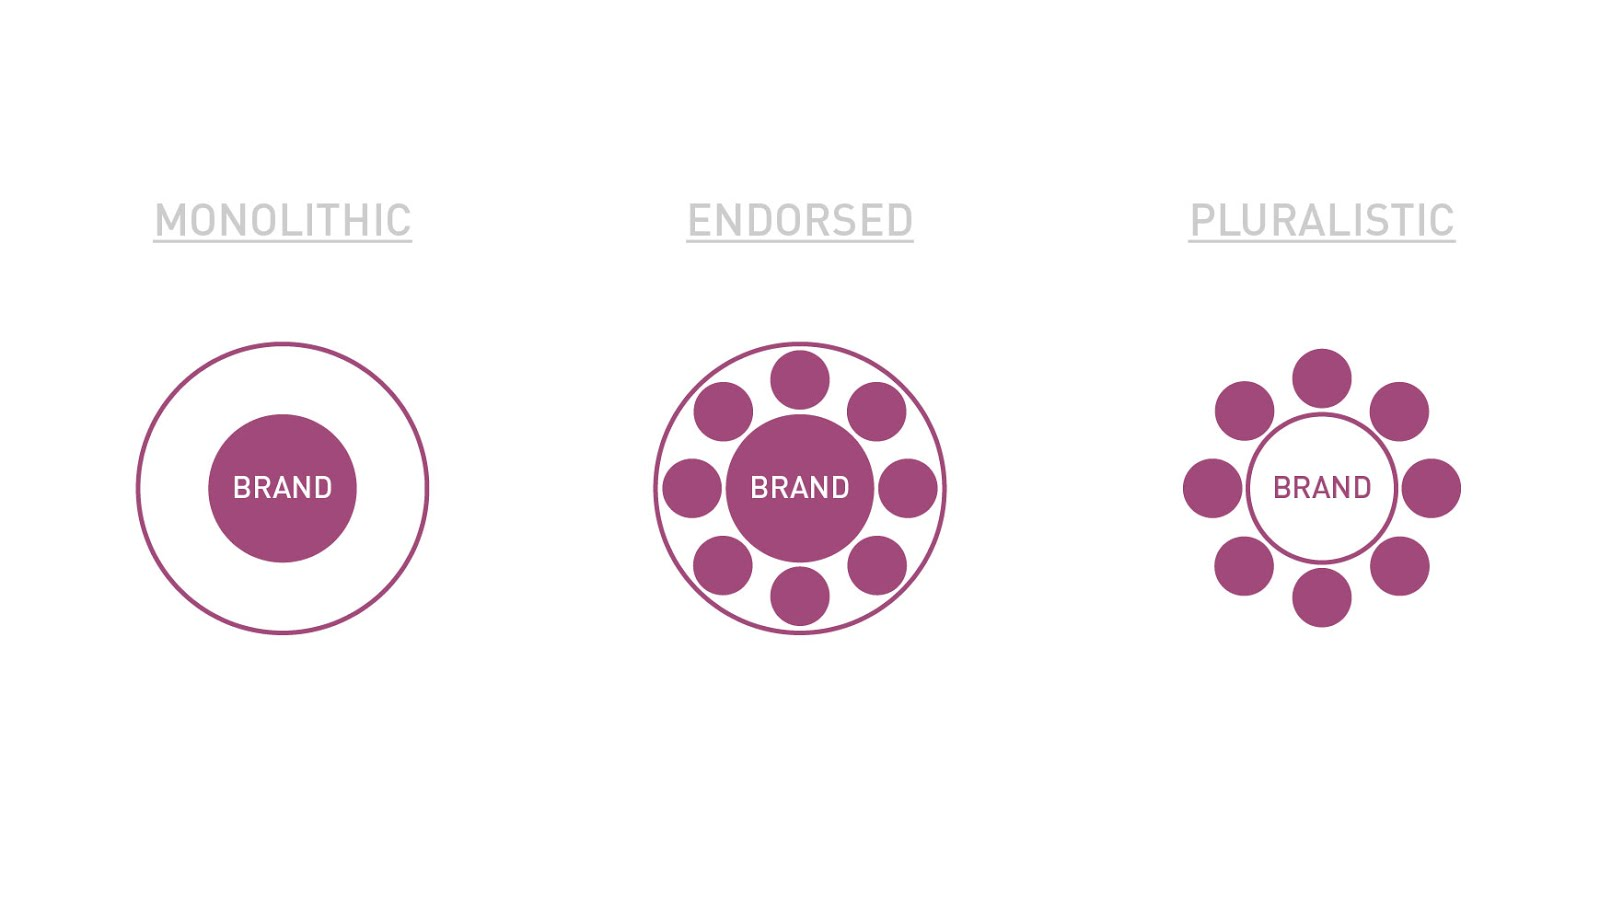 III/ Pluralistic And House Of Brands Are The Best Models For A Company  Proposing Different Products And Services.